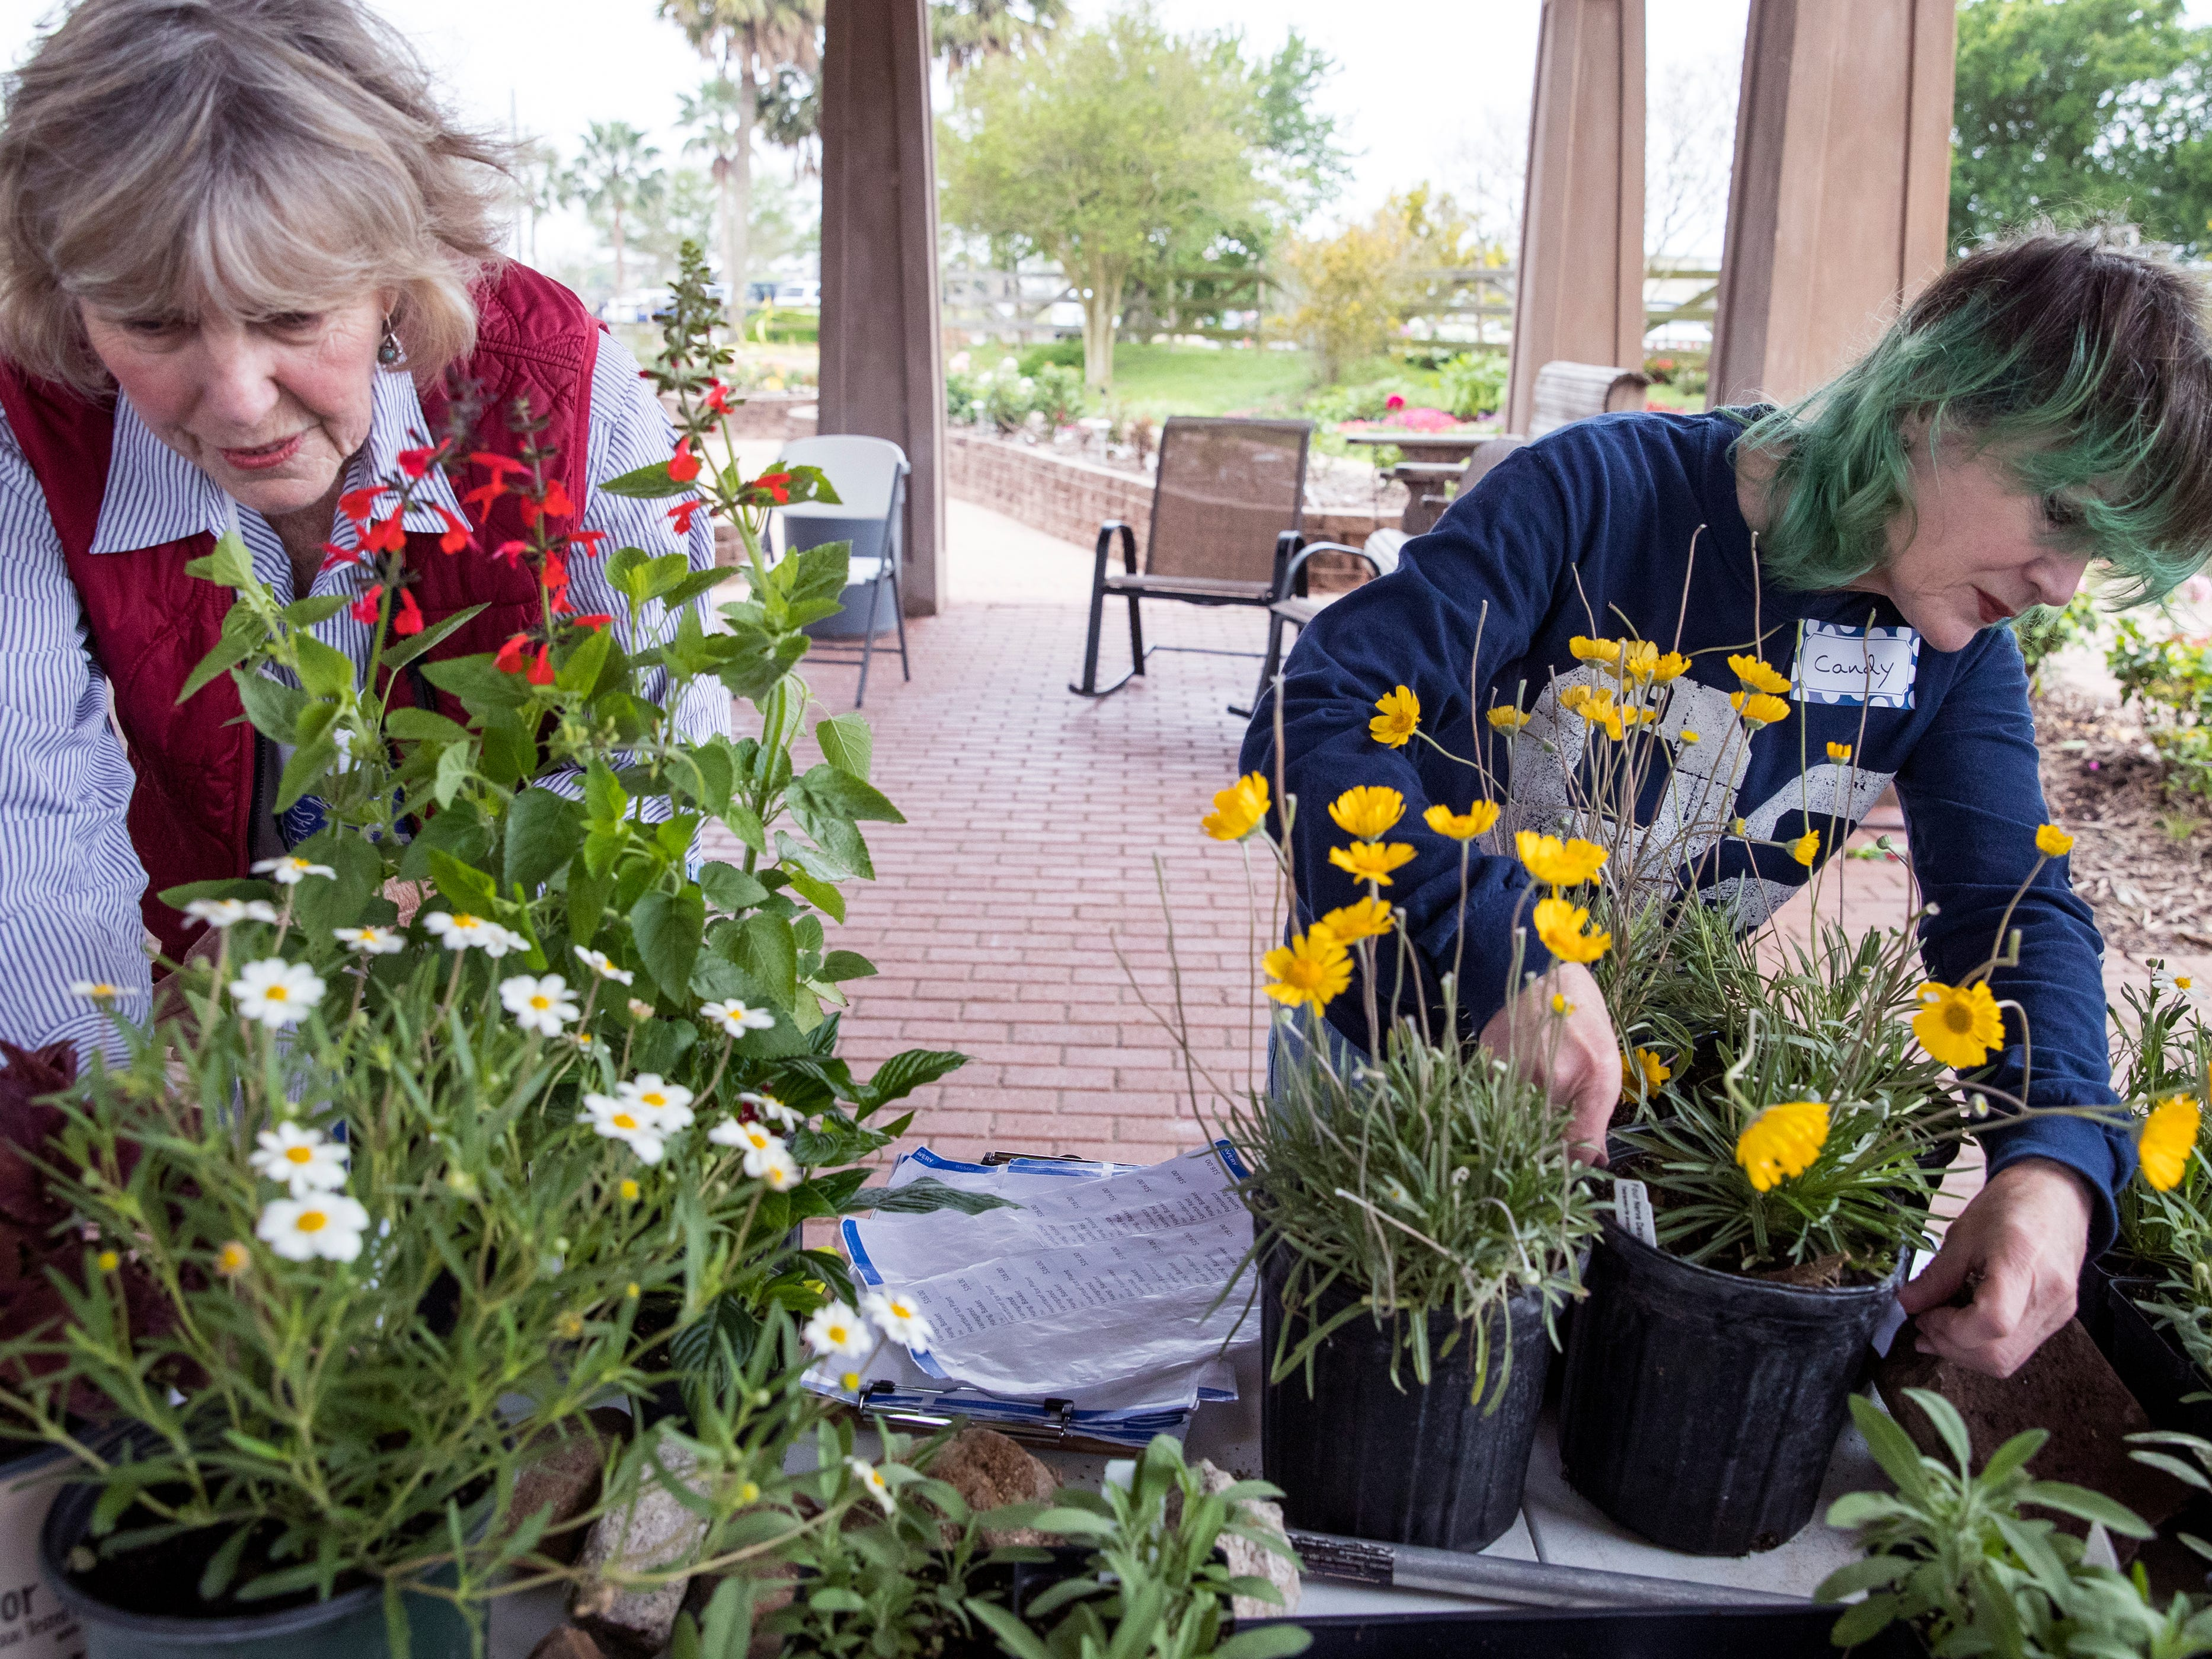 Volunteers Karen Easton (left) and Candy Tidmore price plants on Thursday, April 4, 2019 in preparation for the annual Big Bloom which is Saturday at the South Texas Botanical Gardens & Nature Center. Thousands of varieties of plants have been ordered from wholesalers for the event. Nueces Master Gardeners will be on hand to help visitors pick their plants and answer care questions.